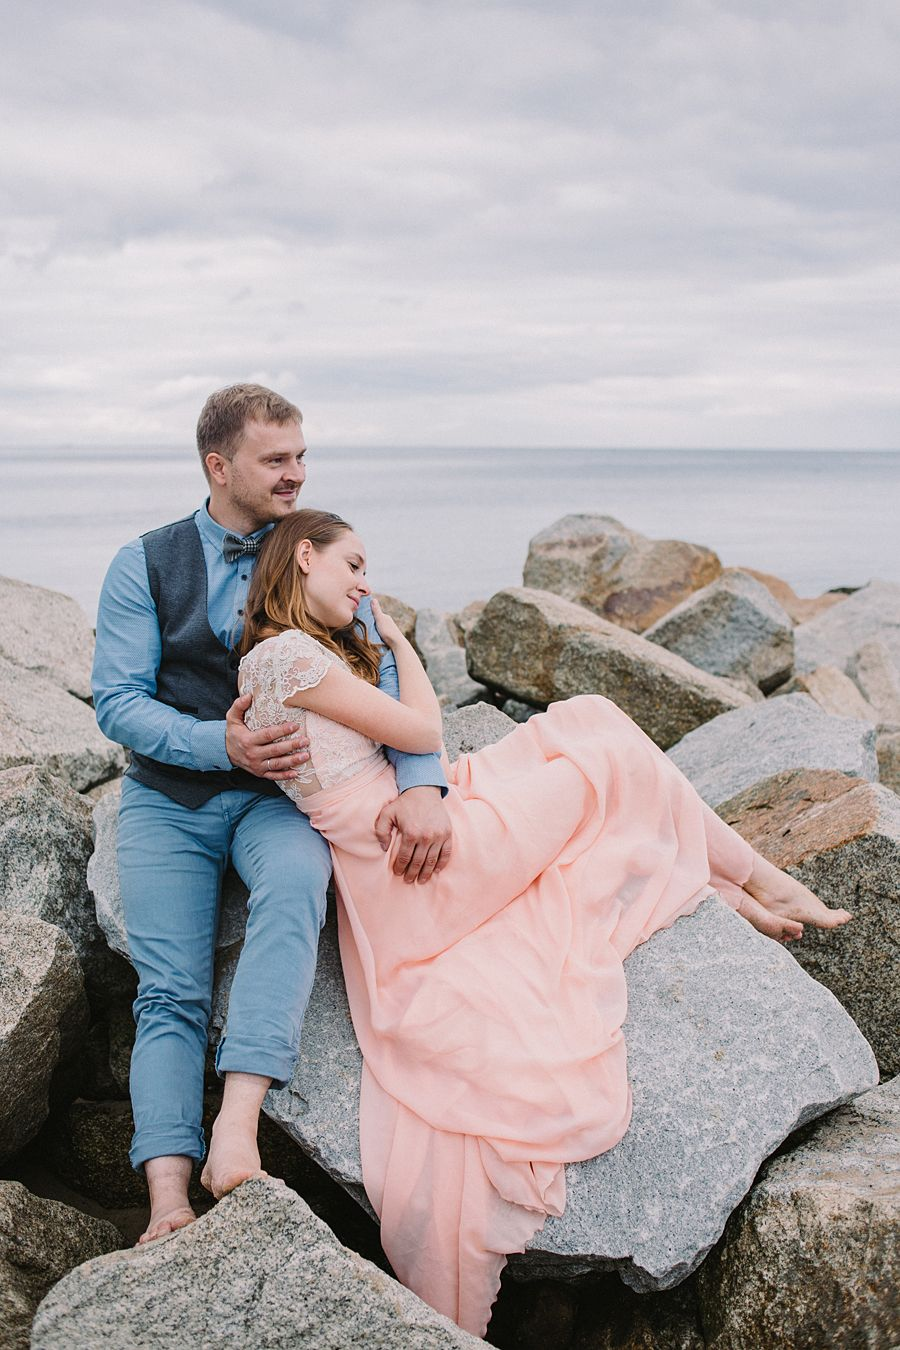 Beautiful Baltic sea wedding shoot. Pale pink wedding dress and grey-blue groom's outfit is just love!